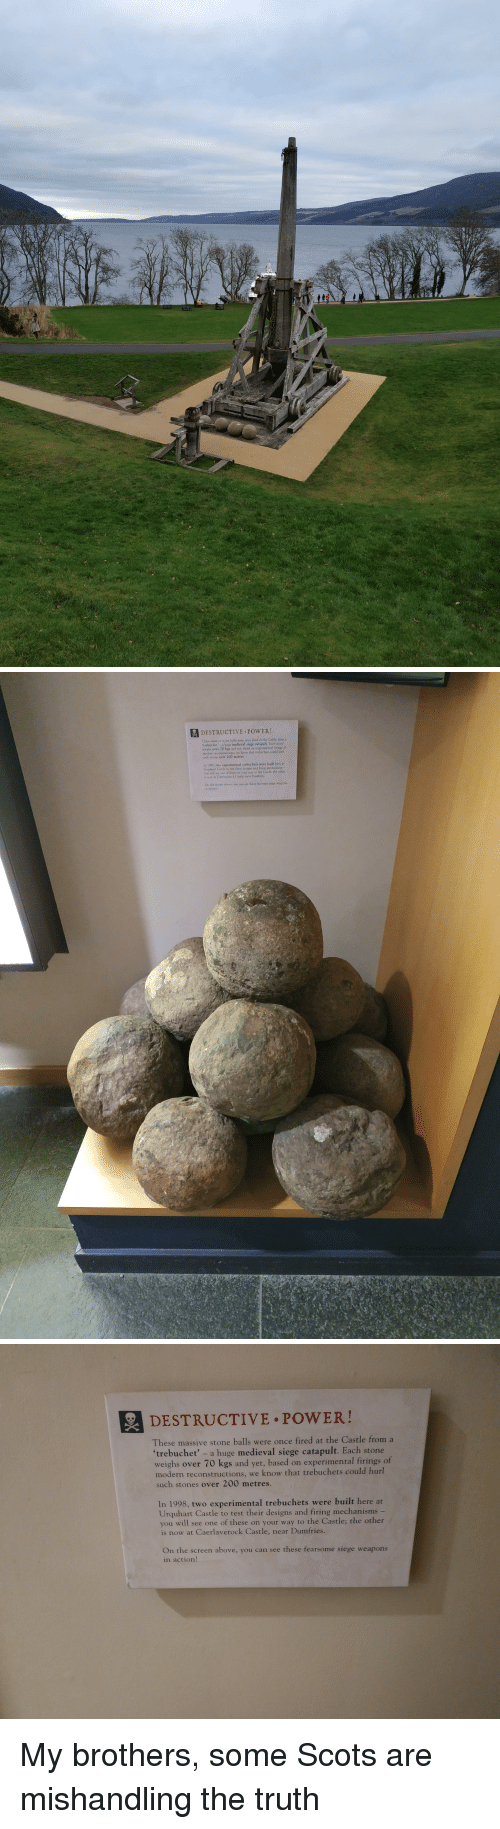 "experimental: DESTRUCTIVE POWER!  These mawive stone balls were once fred at the Castle from a  trebuchet. ""ユhuge medieval siege catapult Each storie  weighs over 70 kgs and yet, hased on experimental firings of  nedern reconutractions, we know that trebuchets conld burl  sich stones over 200 metres  xperimental trebuchets were built here at  1998, t  Urquhart Castle to test their designs and firing mechanistre  you will see one of these on yout w  is now at Caerlaverock Castle, near Dnries  the Casle: the other  On the screen above, you can nee these fearsome sieye wpapons  action   DESTRUCTIVE.PoWER!  These massive stone balls were once fired at the Castle from a  'trebuchet' - a huge medieval siege catapult. Each stone  weighs over 70 kgs and yet, based on experimental firings of  modern reconstructions, we know that trebuchets could hurl  such stones over 200 metres.  In 1998, two experimental trebuchets were built here at  Urquhart Castle to test their designs and firing mechanisms -  you will see one of these on your way to the Castle; the other  is now at Caerlaverock Castle, near Dumfries.  On the screen above, you can see these fearsome siege weapons  in action! My brothers, some Scots are mishandling the truth"